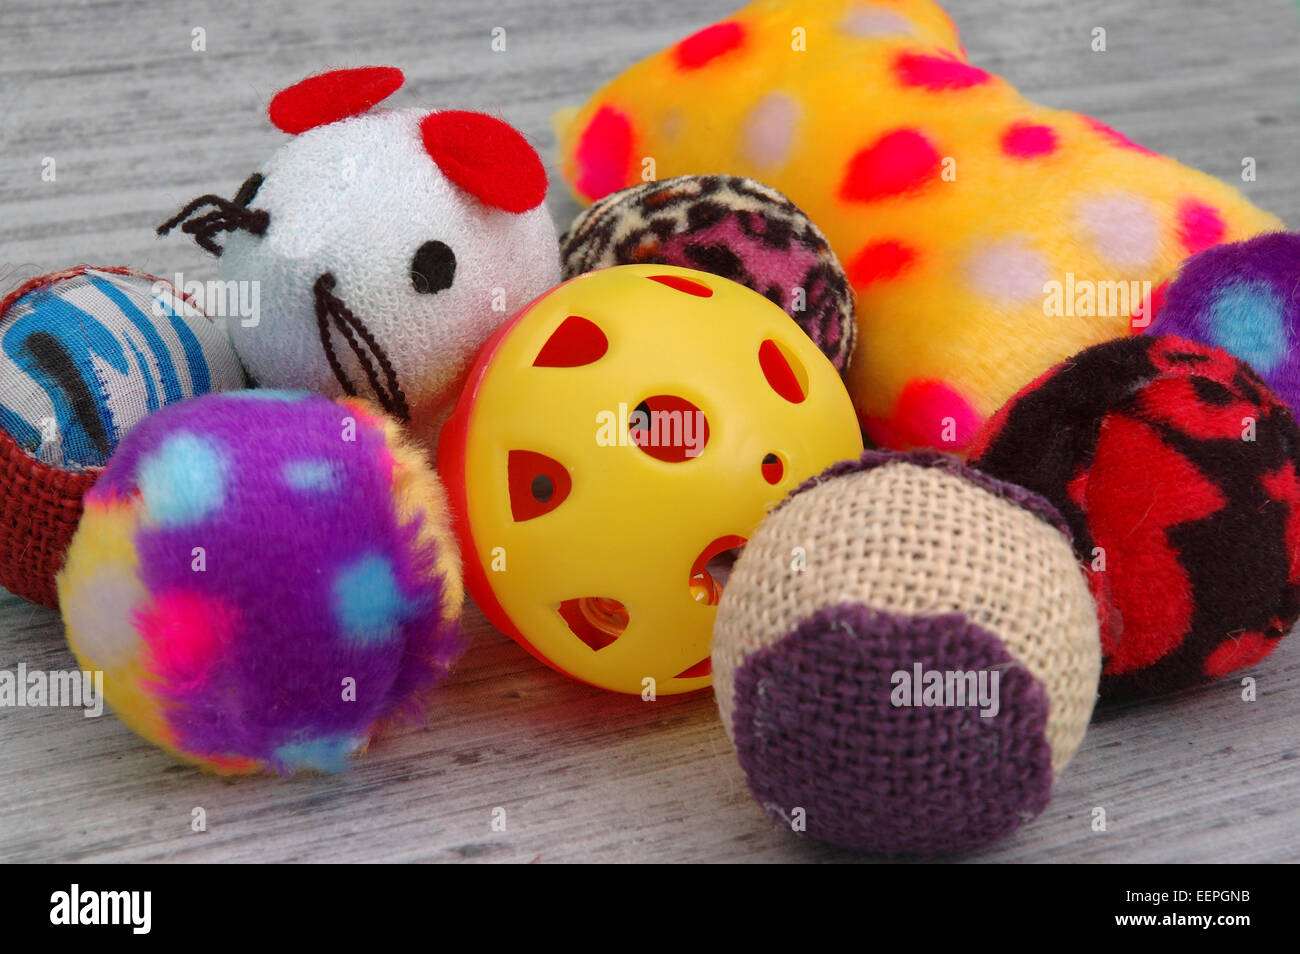 Assortment of cat toys of different colors, shapes and textures. - Stock Image